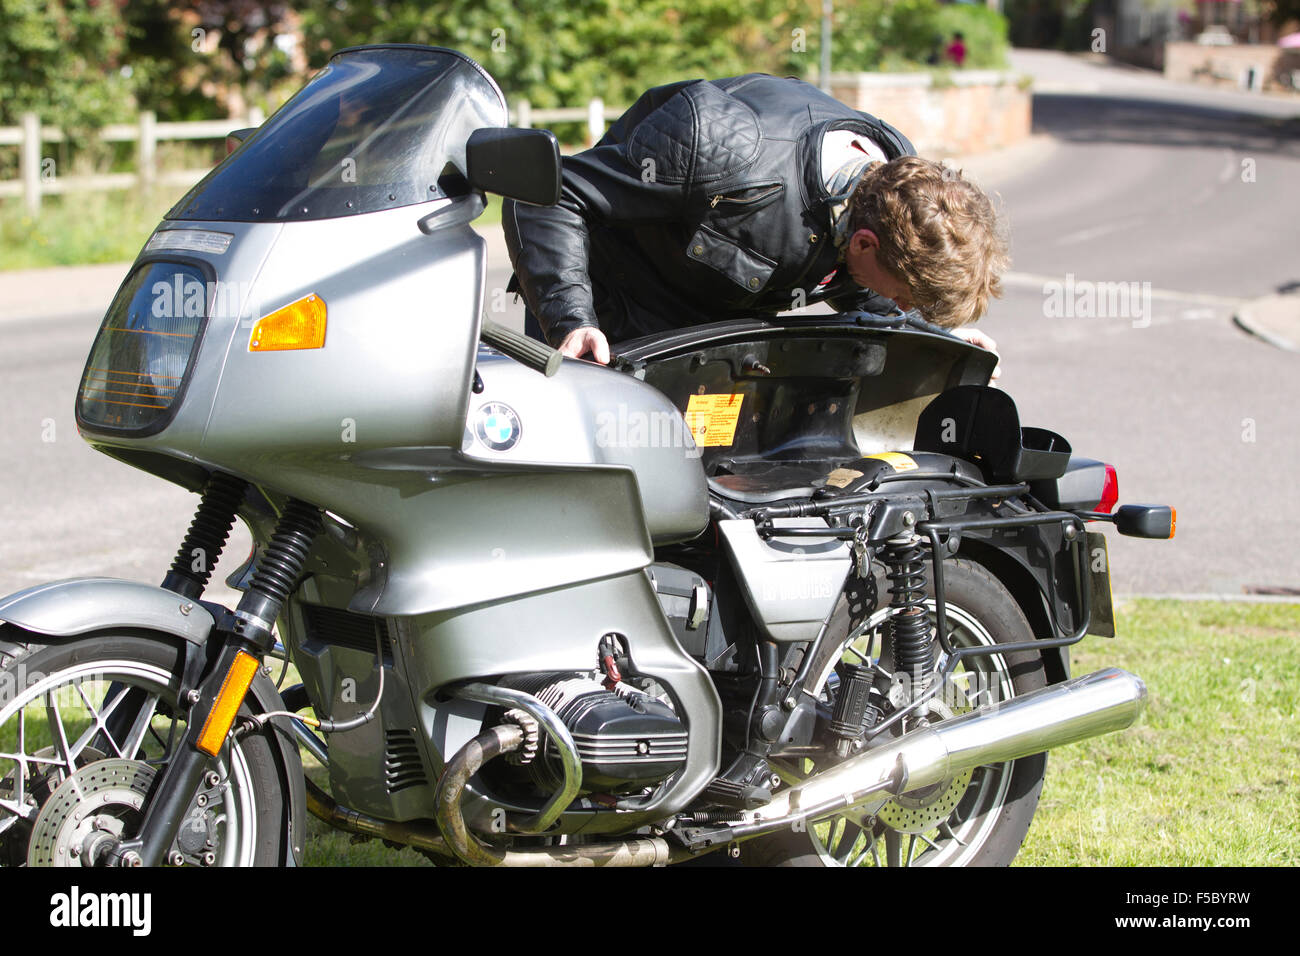 1976 BMW R100 RS two-cylinder air-cooled engine full-fairing